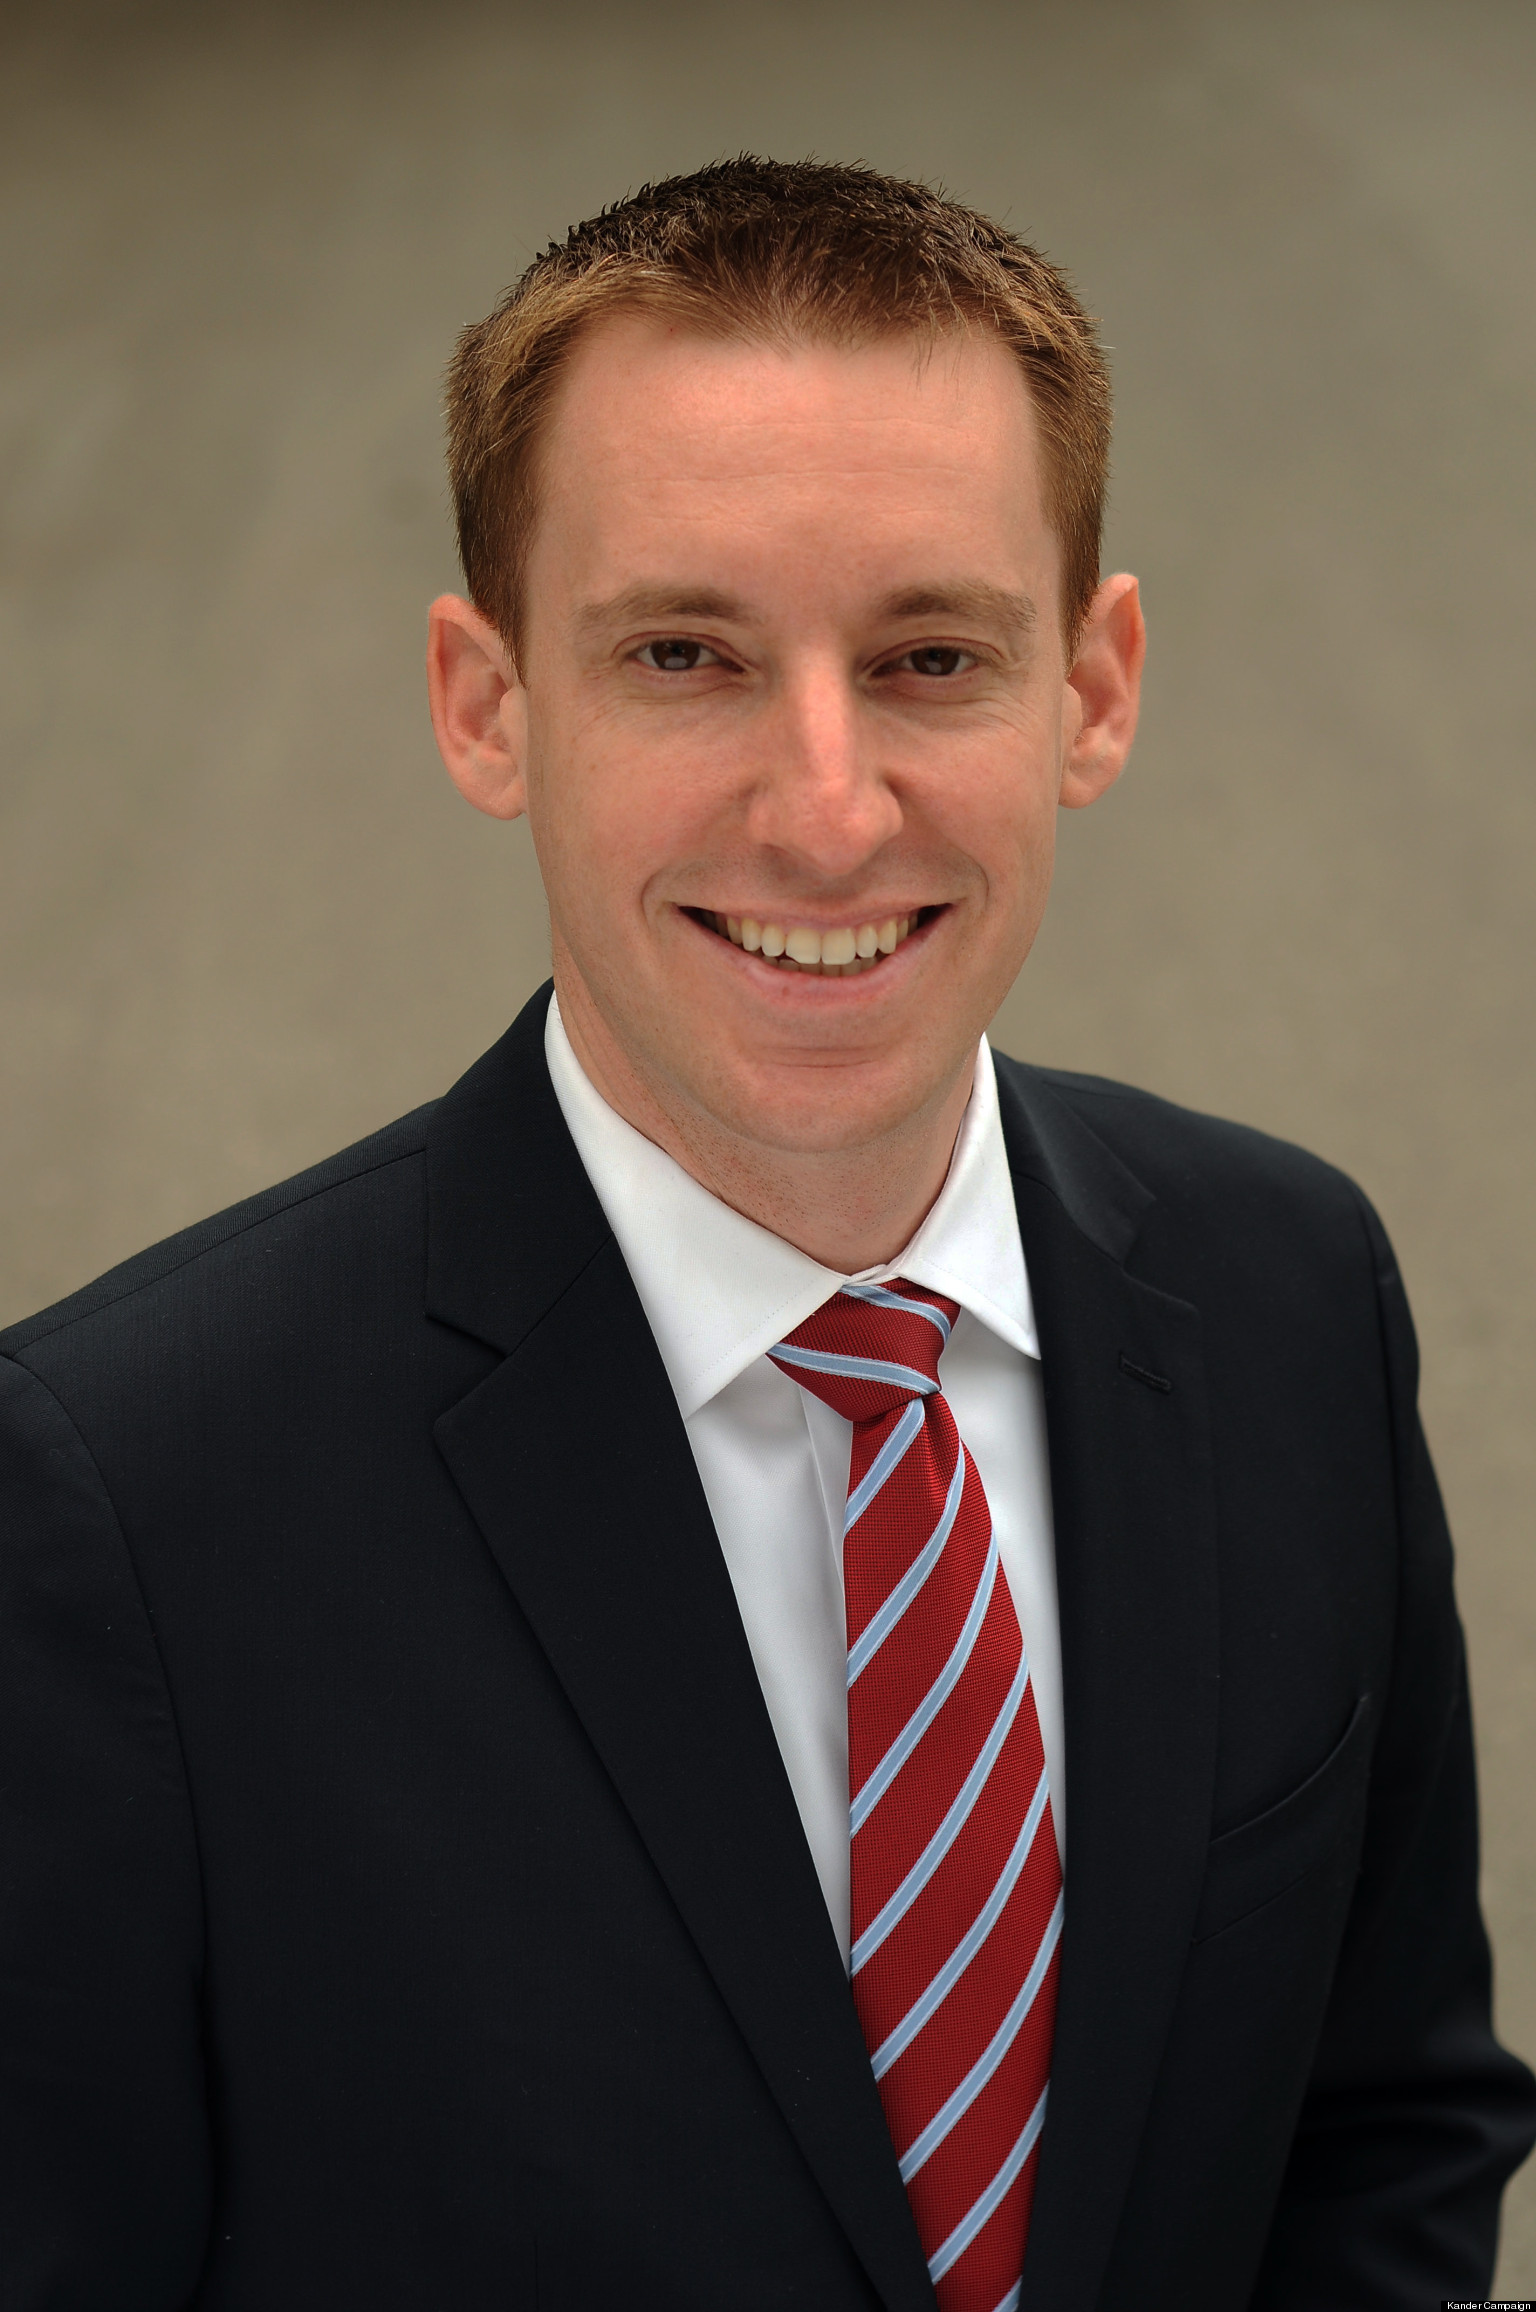 Jason Kander who many had pegged for higher office held his first campaign event for his bid for Kansas City mayor He joins eight others who will seek Kansas City